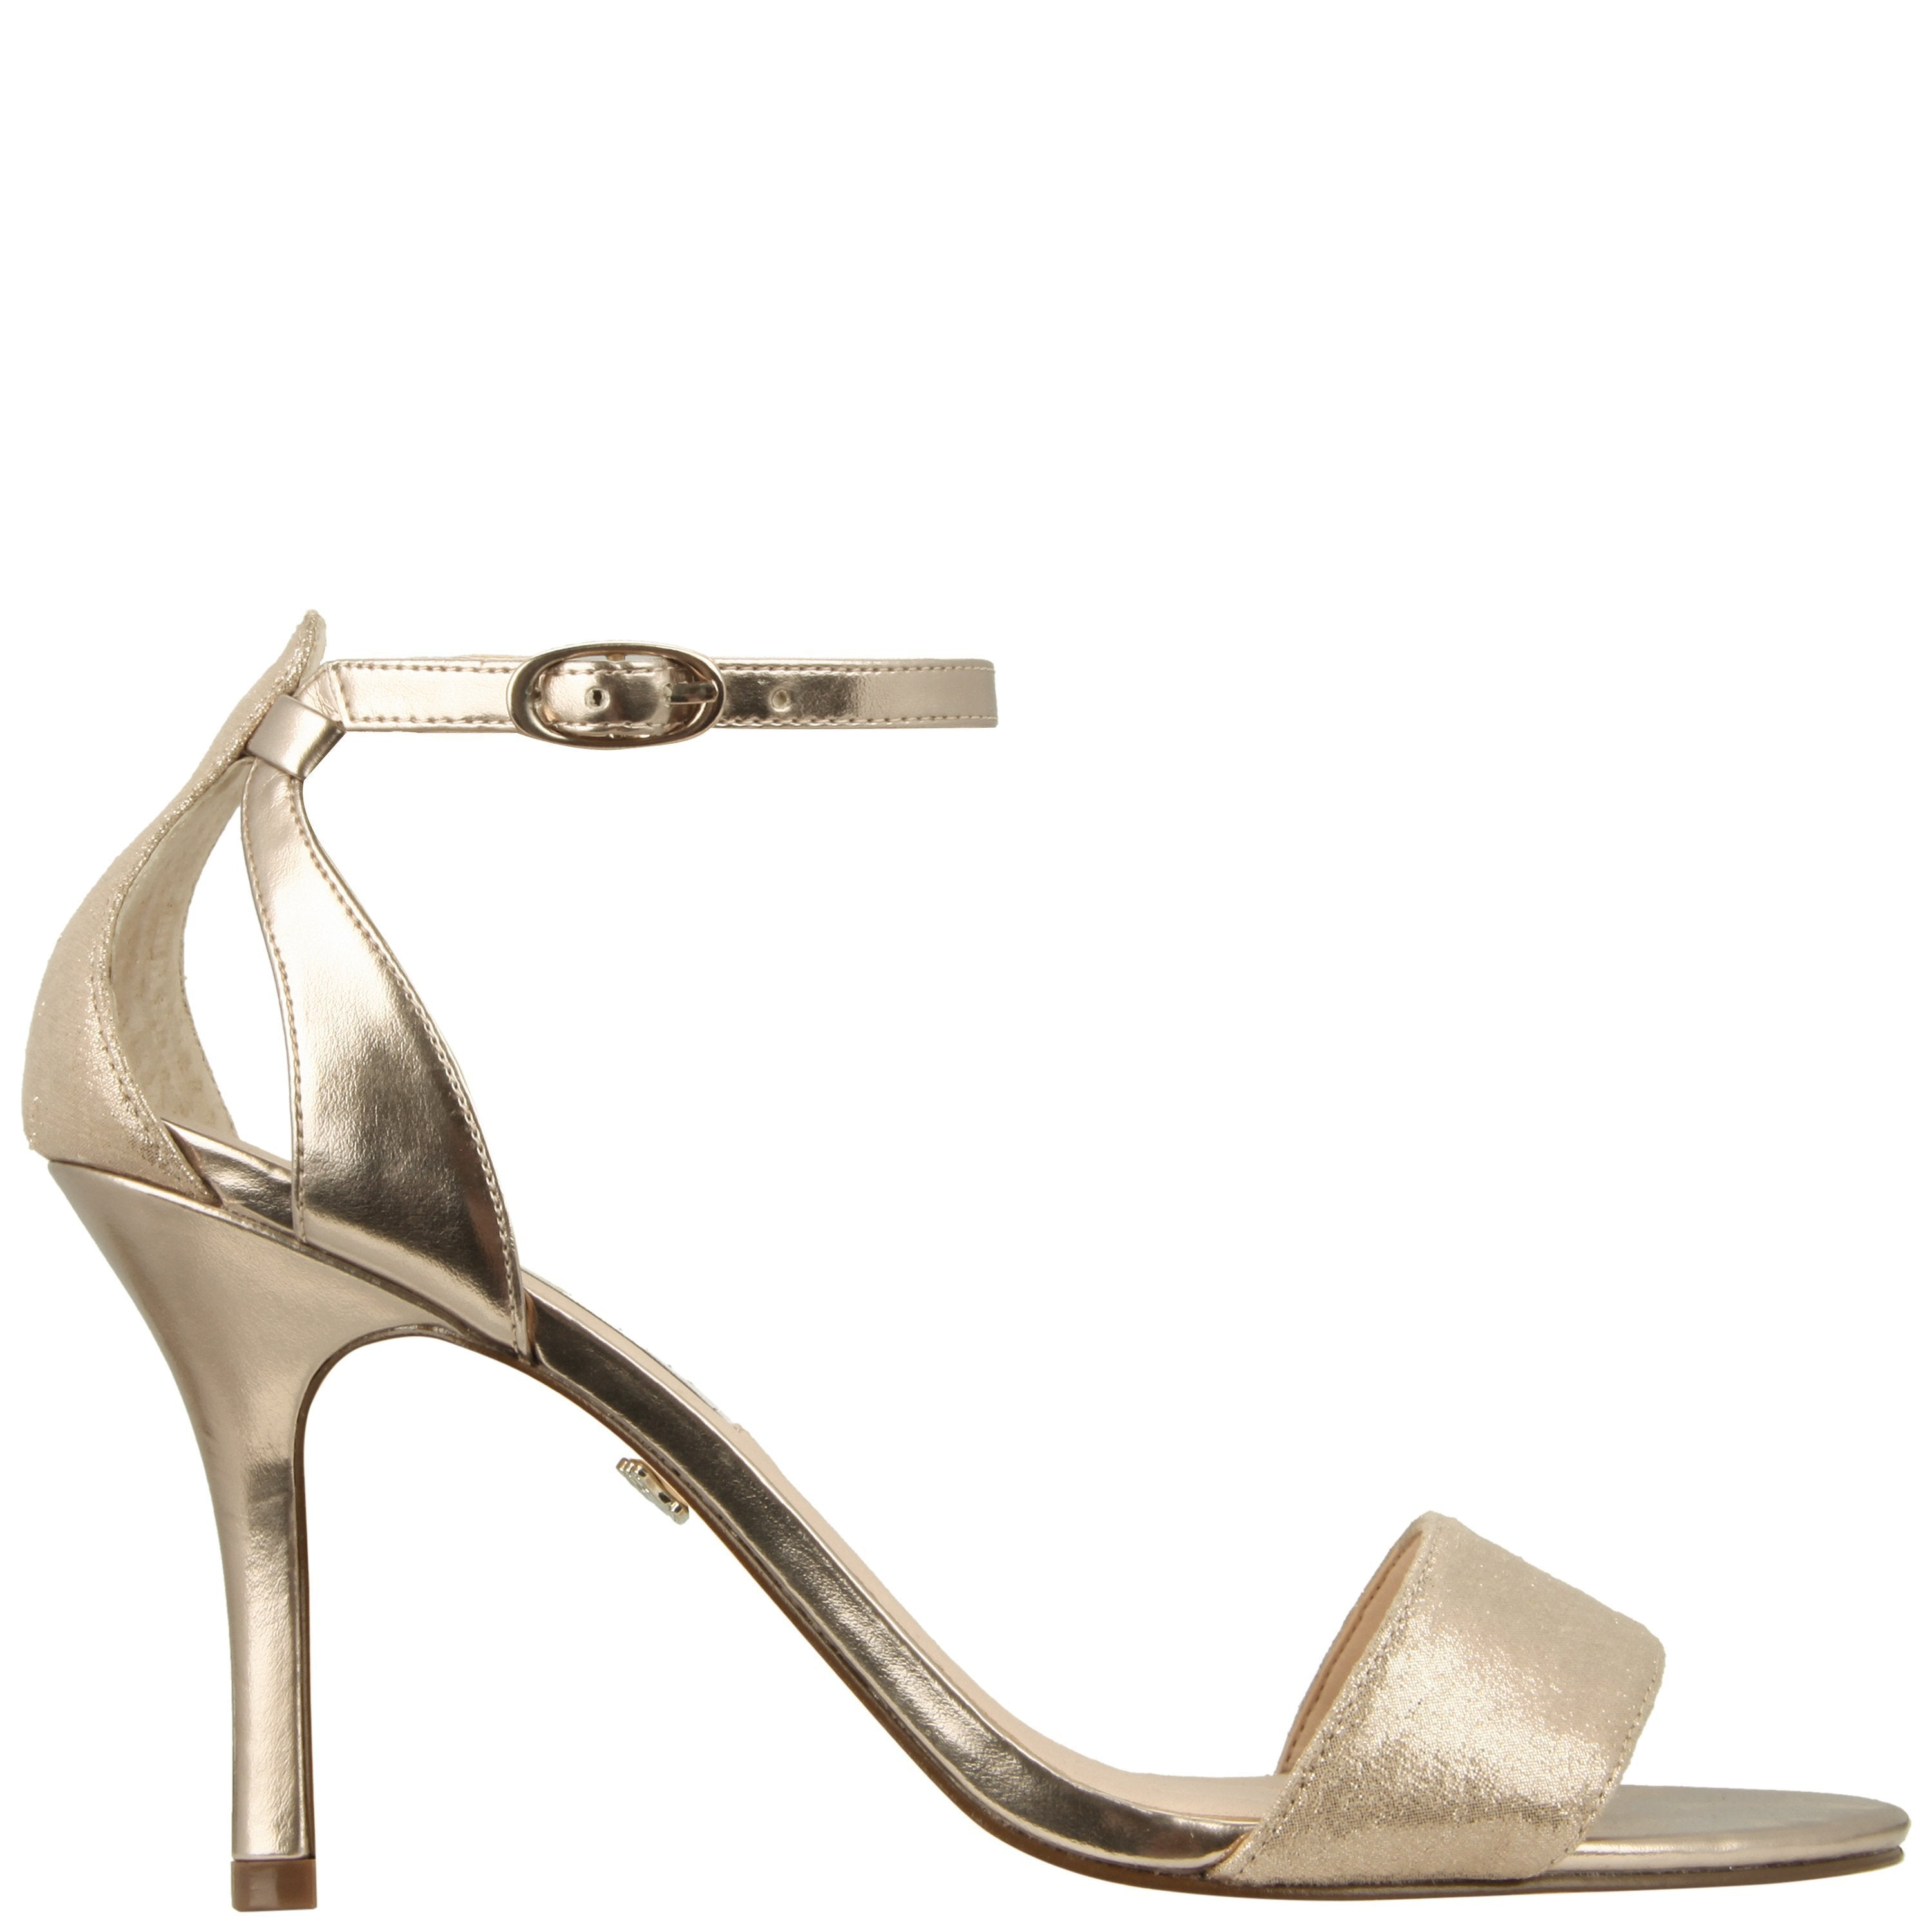 VENETIA-TAUPE REFLECTIVE SUEDETTE - TAUPE